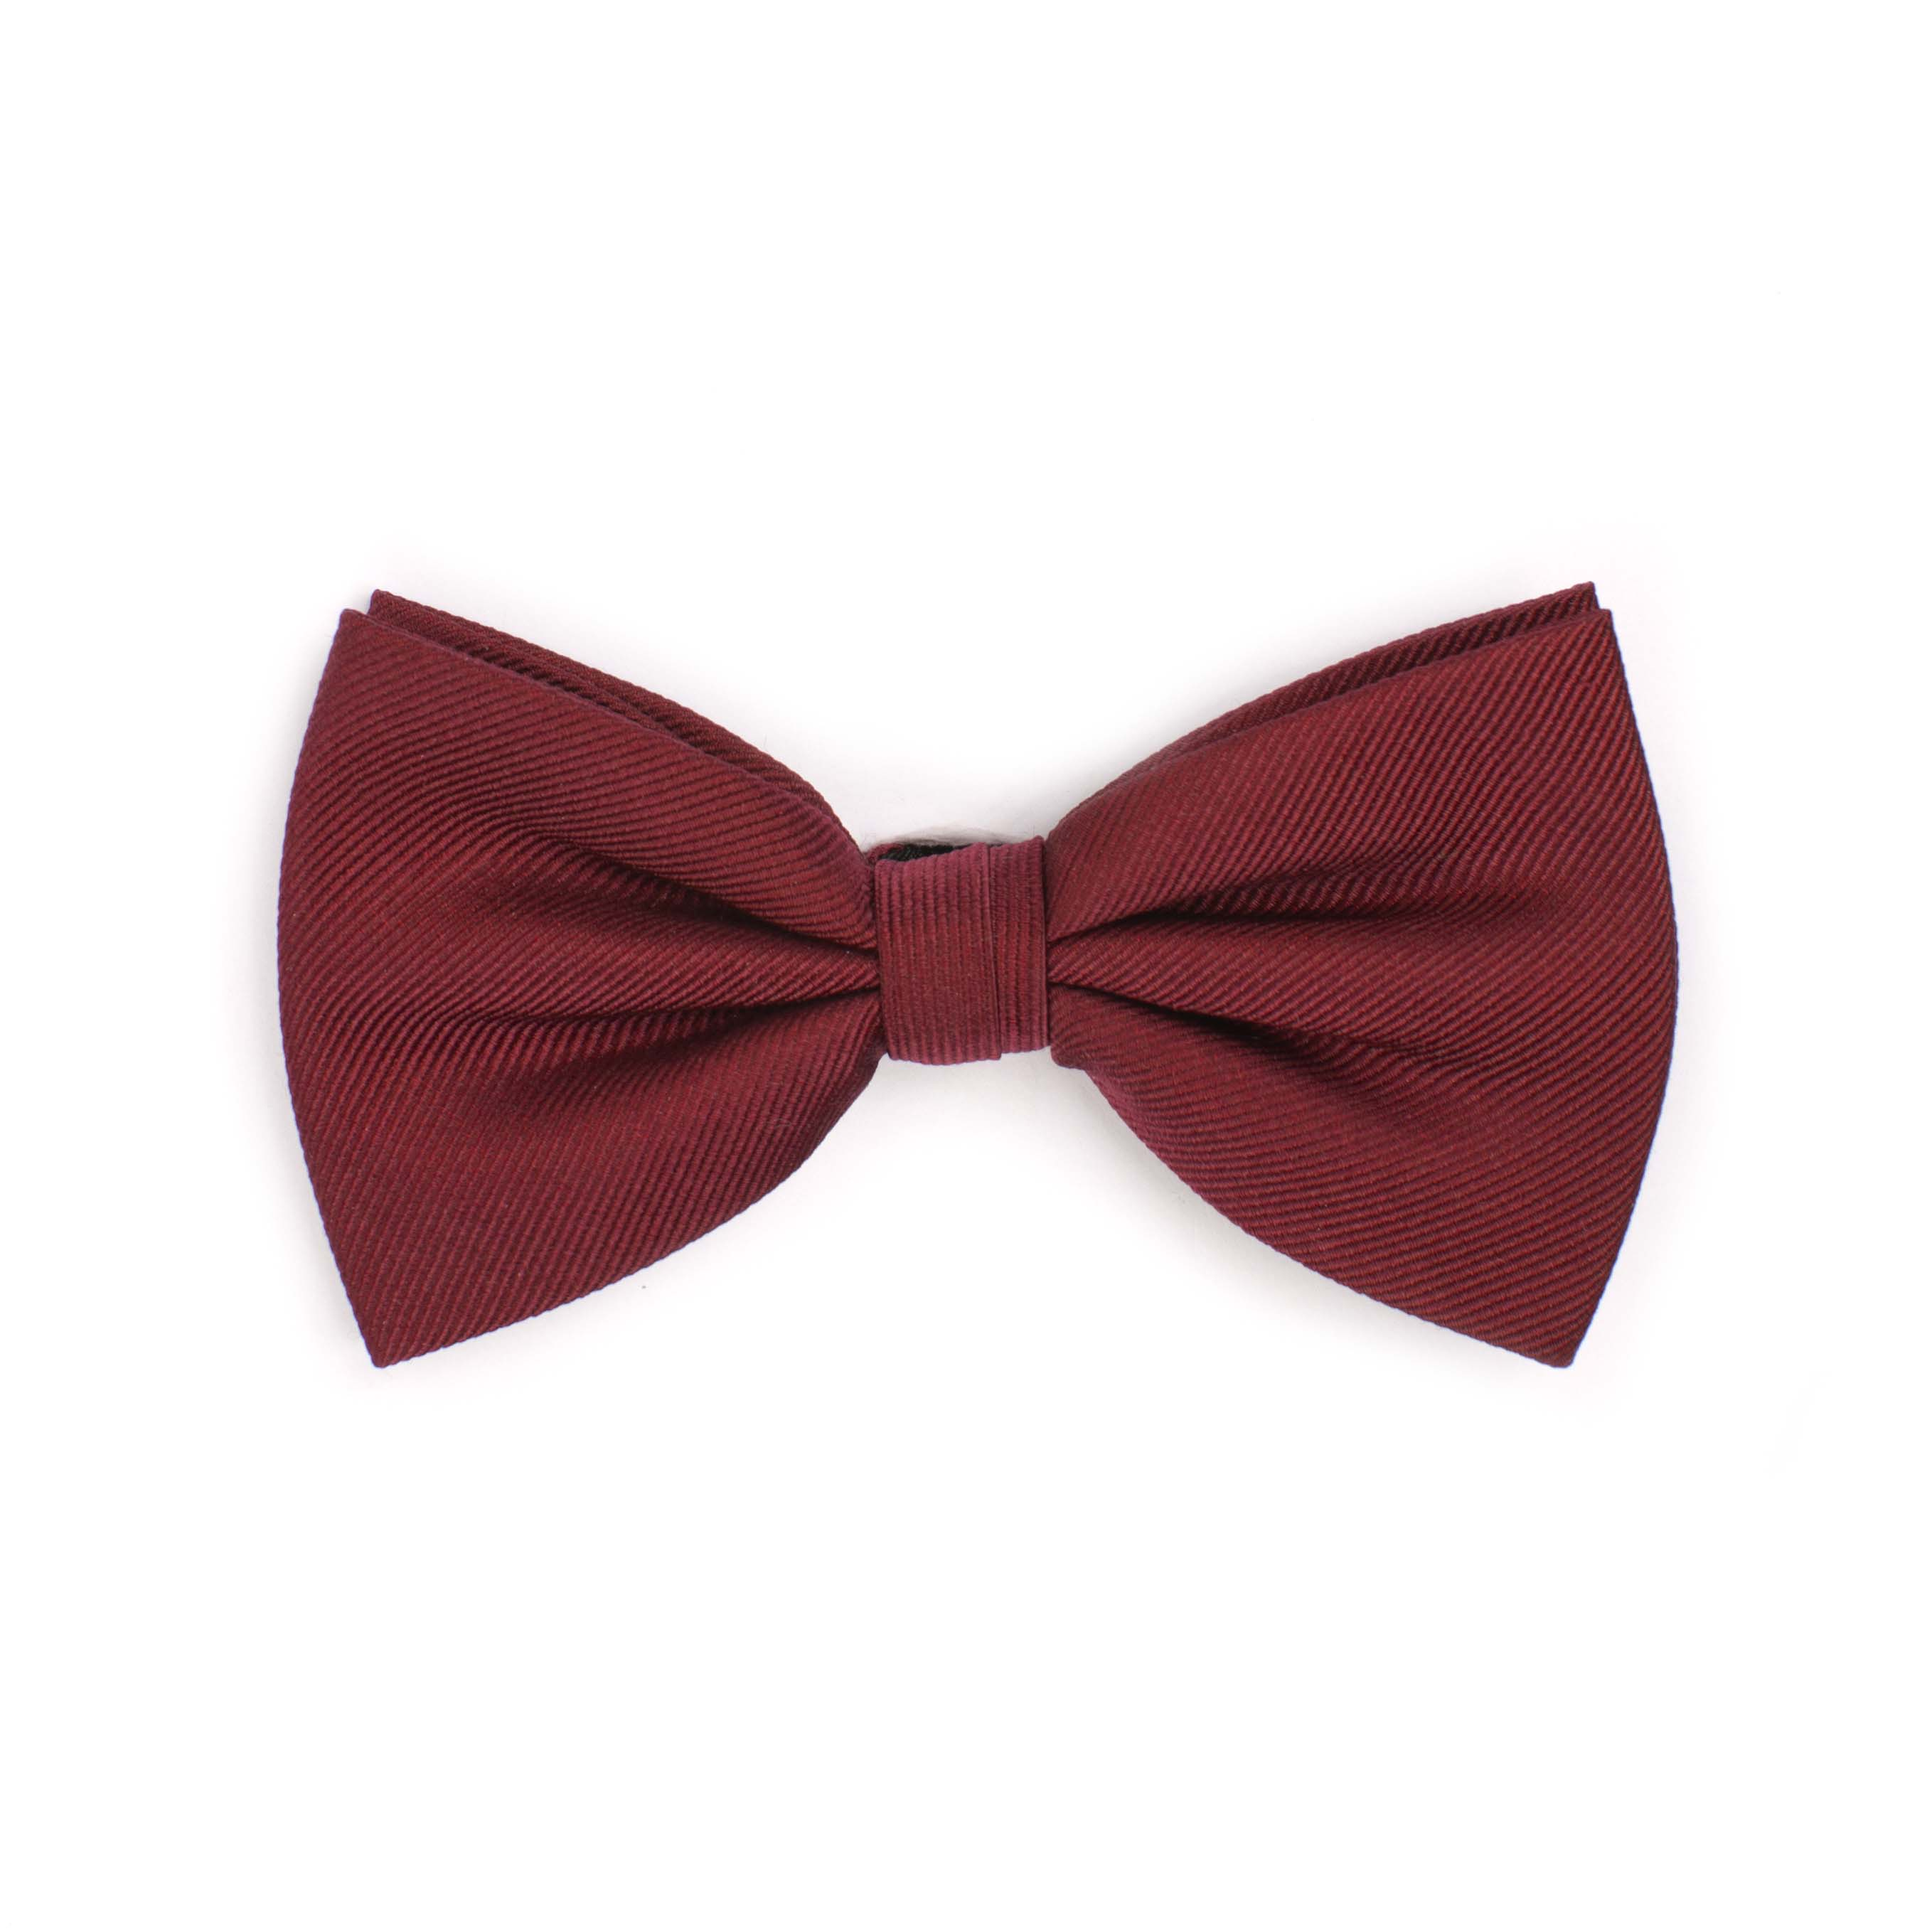 Bow tie classic ribbed burgundy